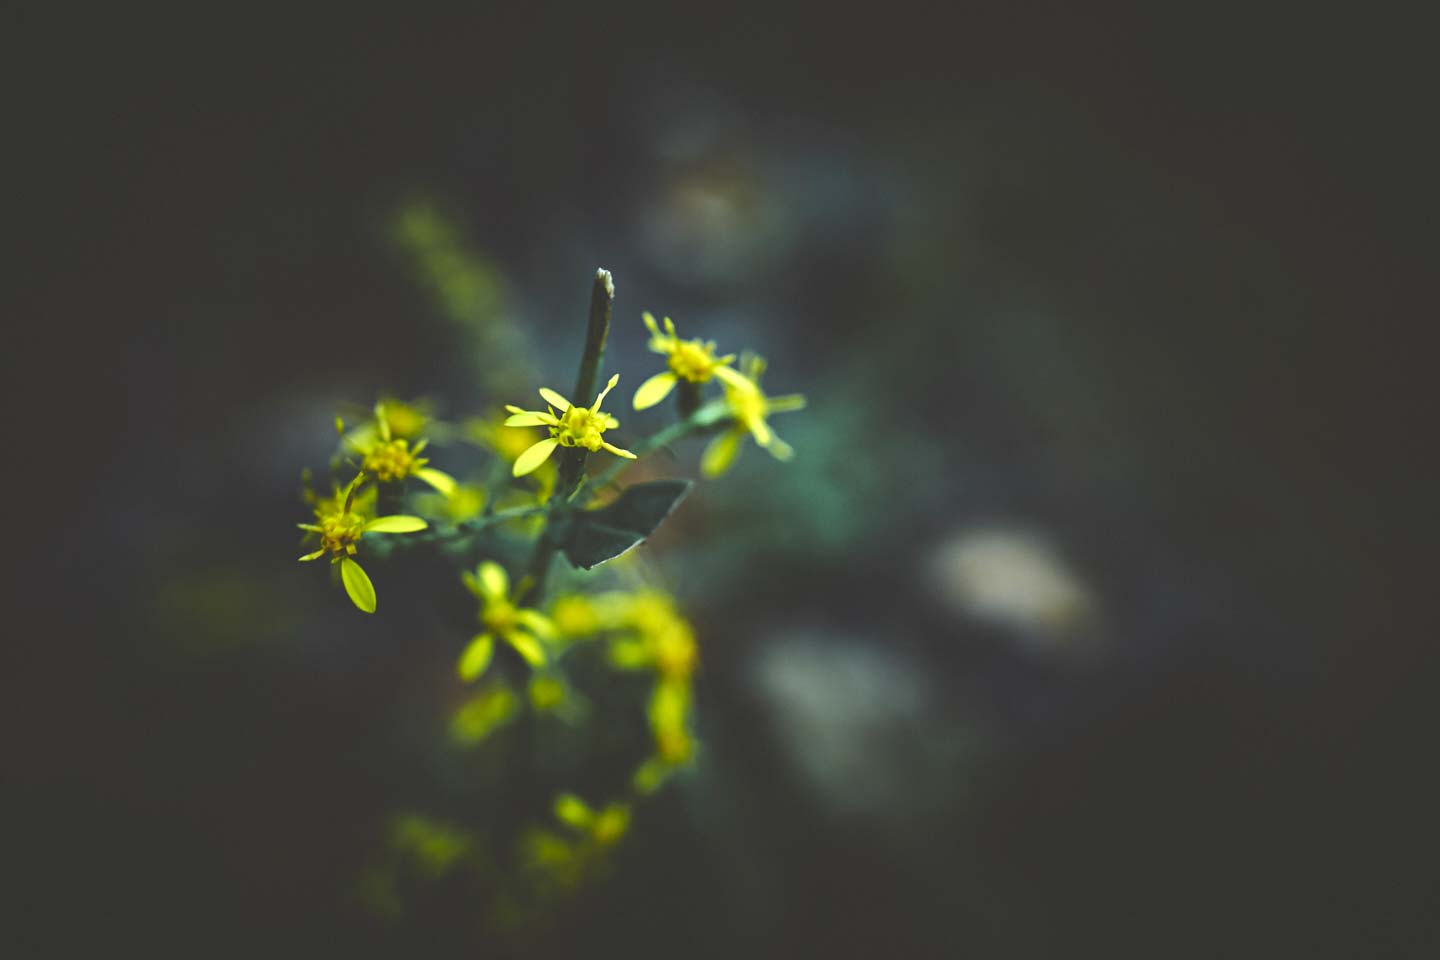 yellow-flowers-travel-photographer-marcus-lewis-40-percent